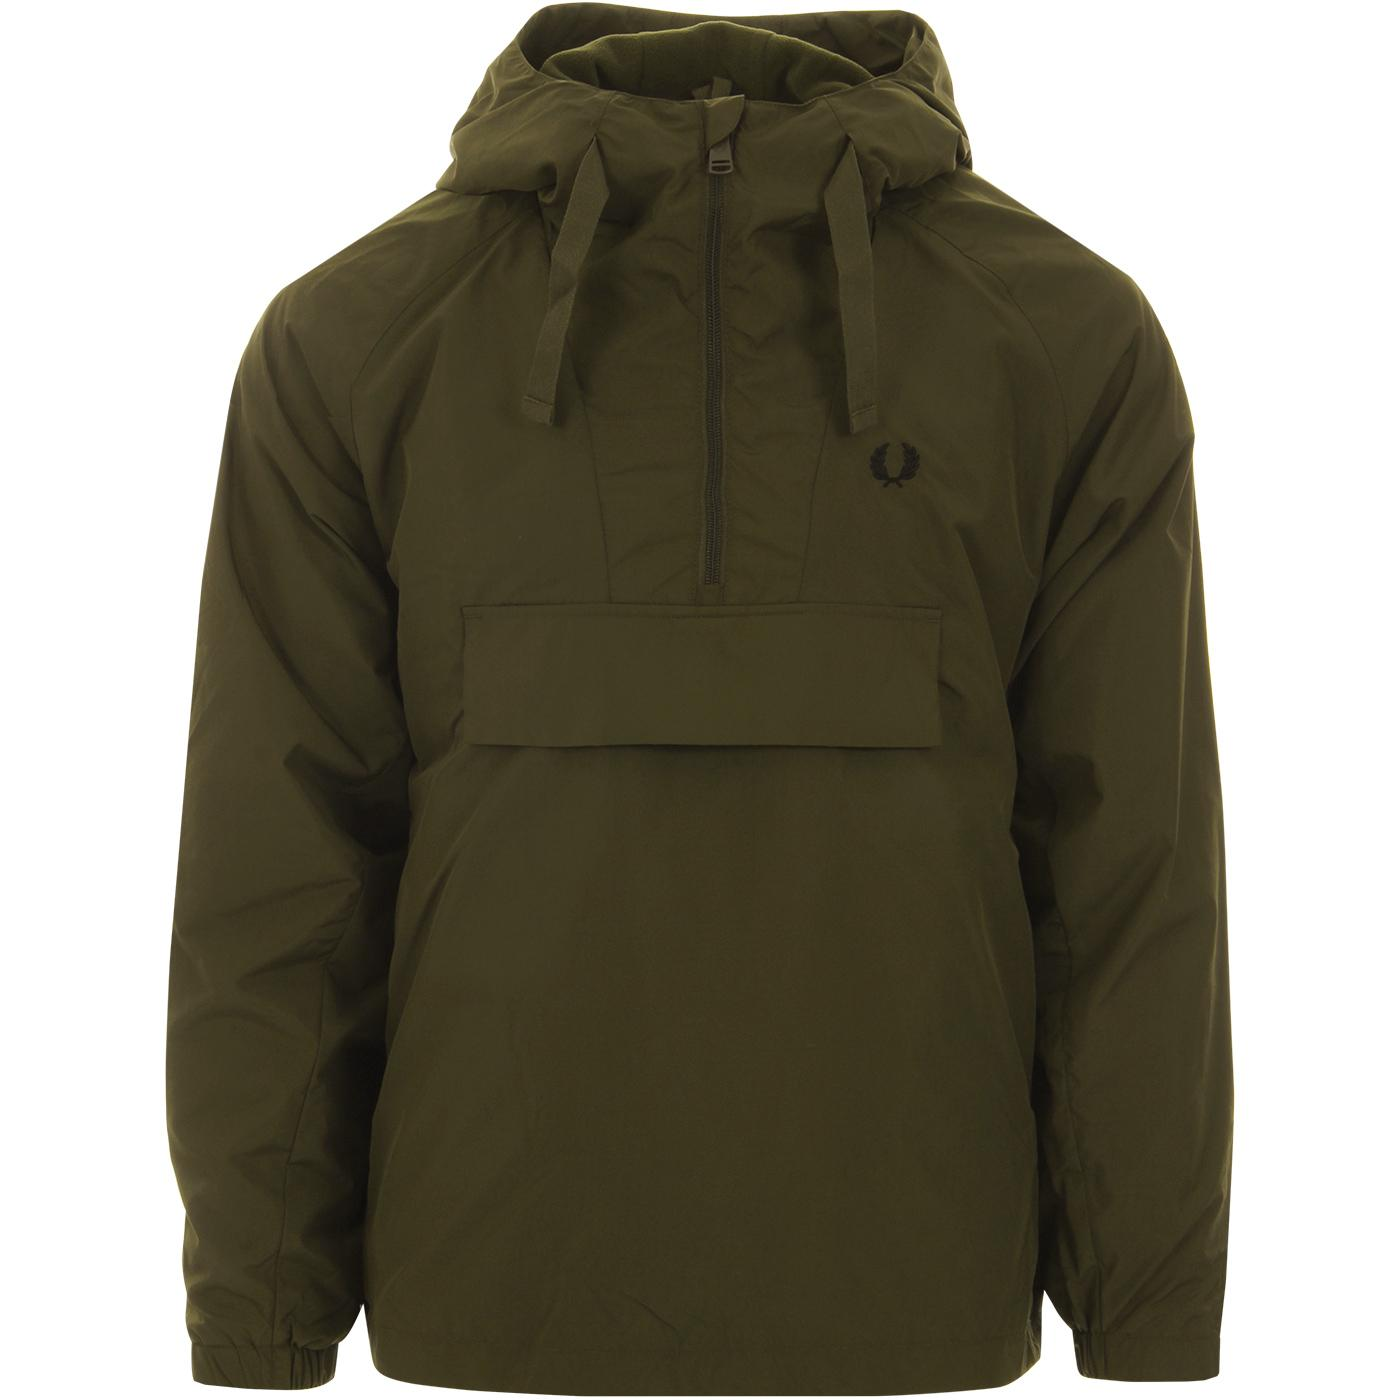 FRED PERRY Men's Mod Overhead Ripstop Jacket DT